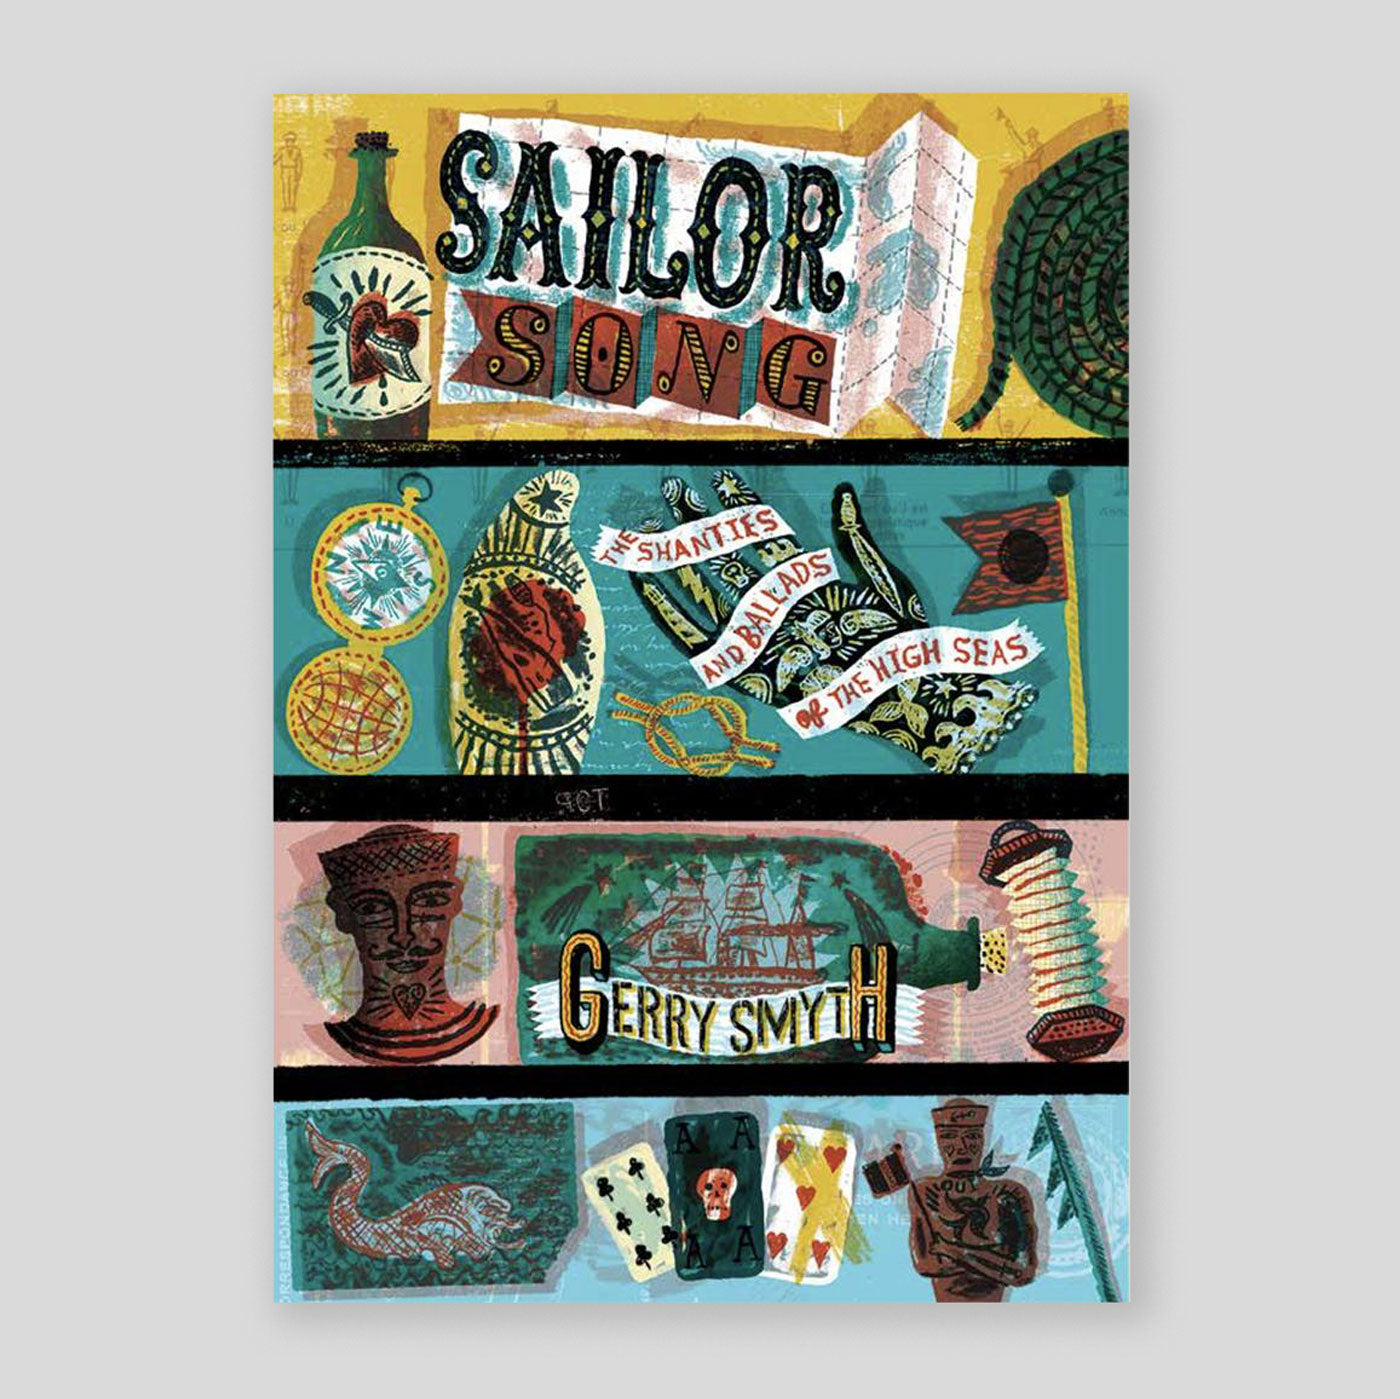 Sailor Song: The Shanties and Ballads of the High Seas | Gerry Smyth | Colours May Vary